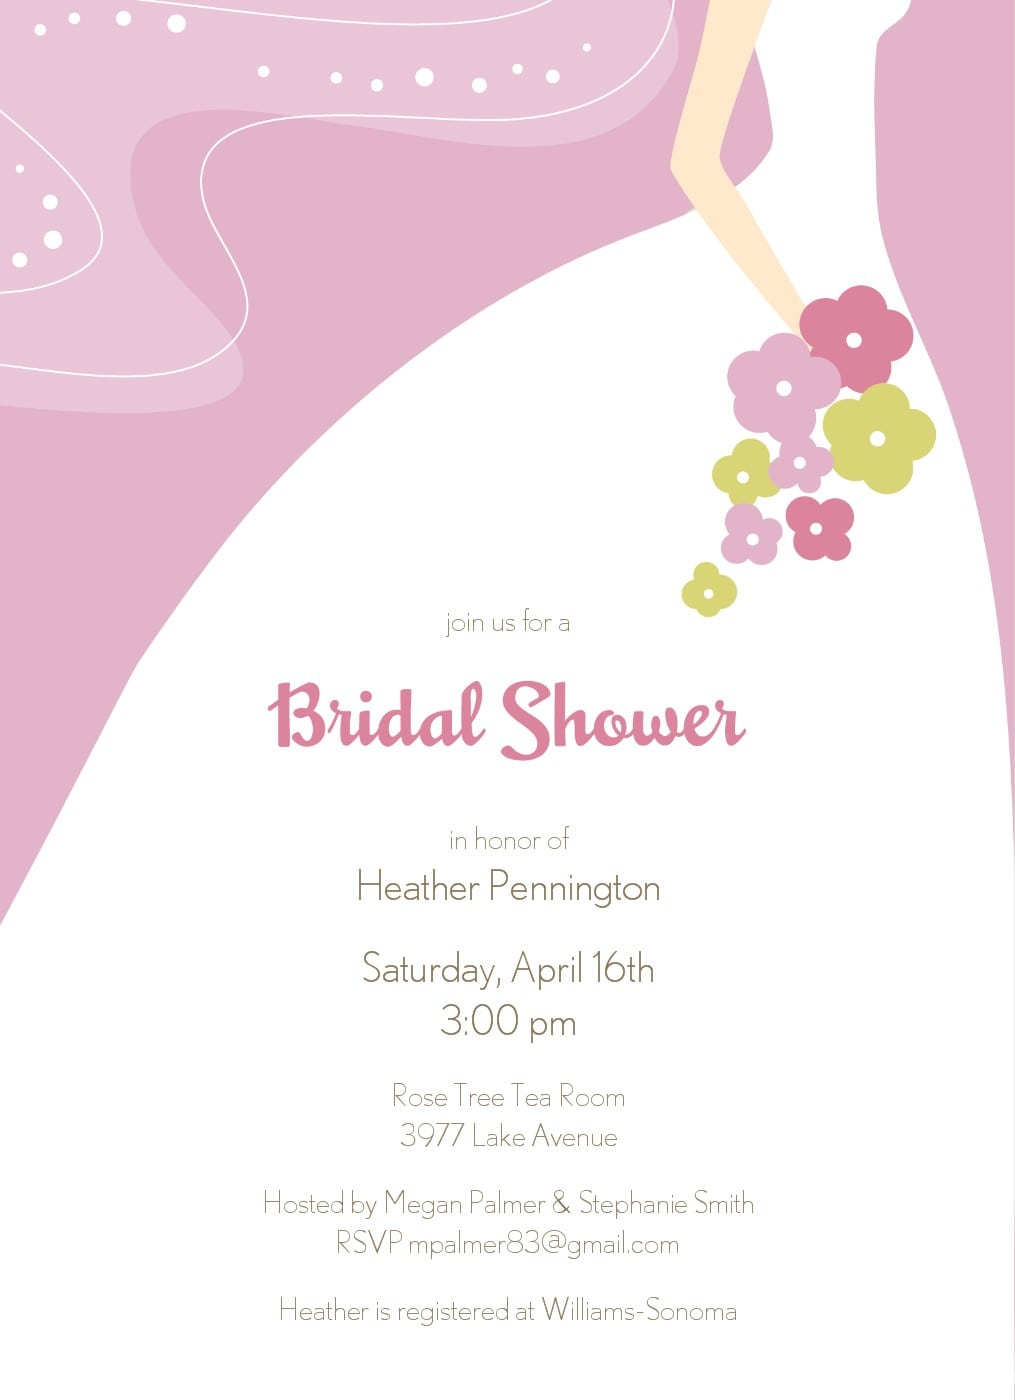 Free wedding shower template for invitation for Free bridal shower invitation templates downloads